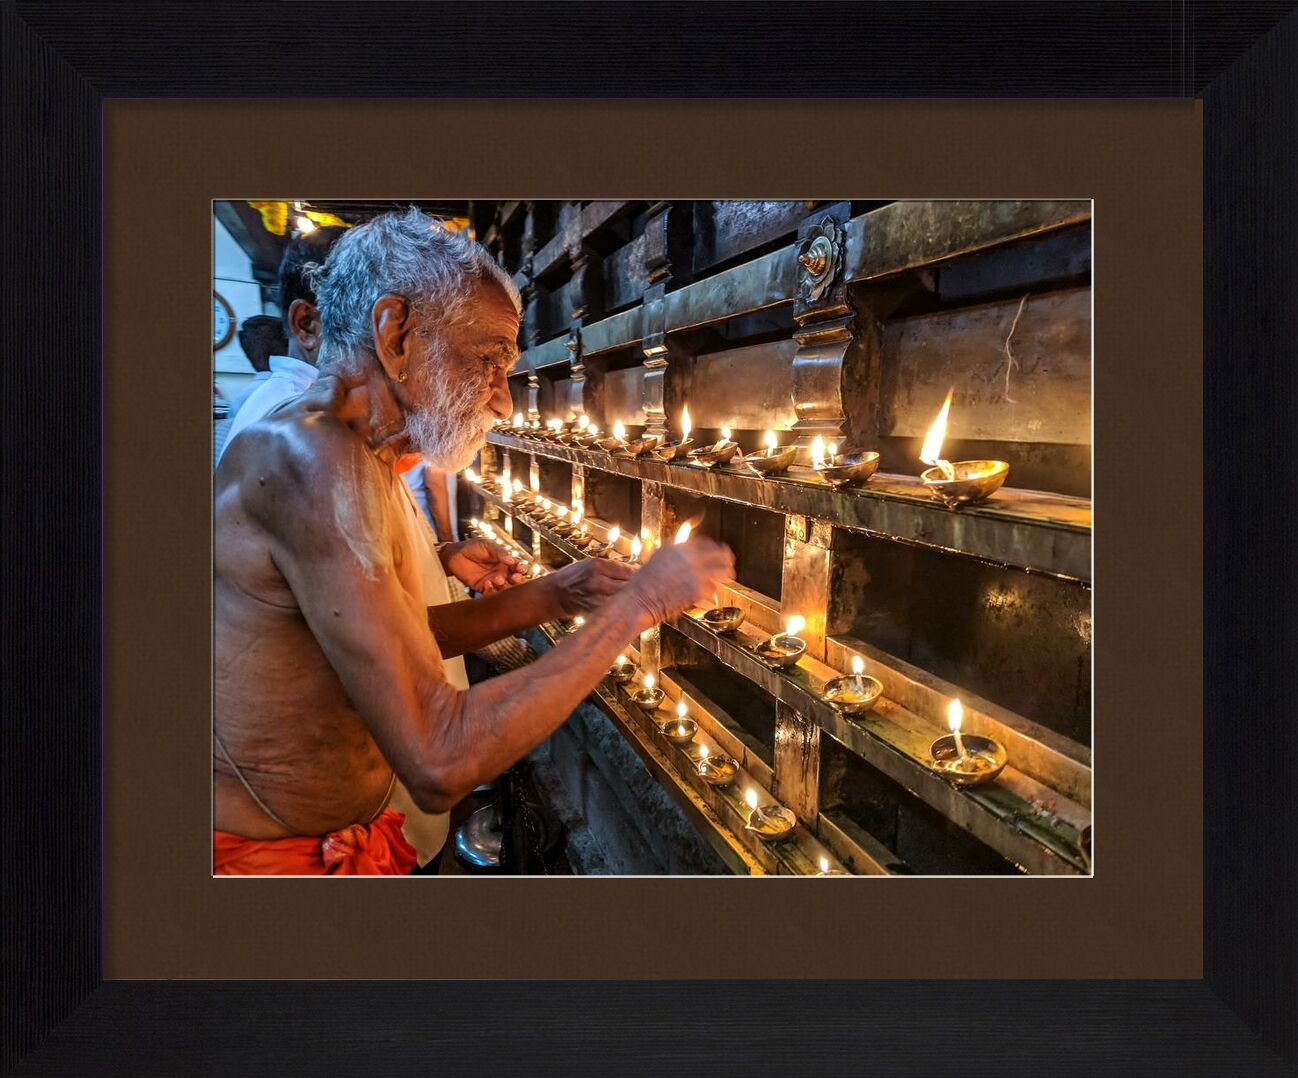 Croyance from Aliss ART, Prodi Art, person, old, man, flames, elderly, Candlelights